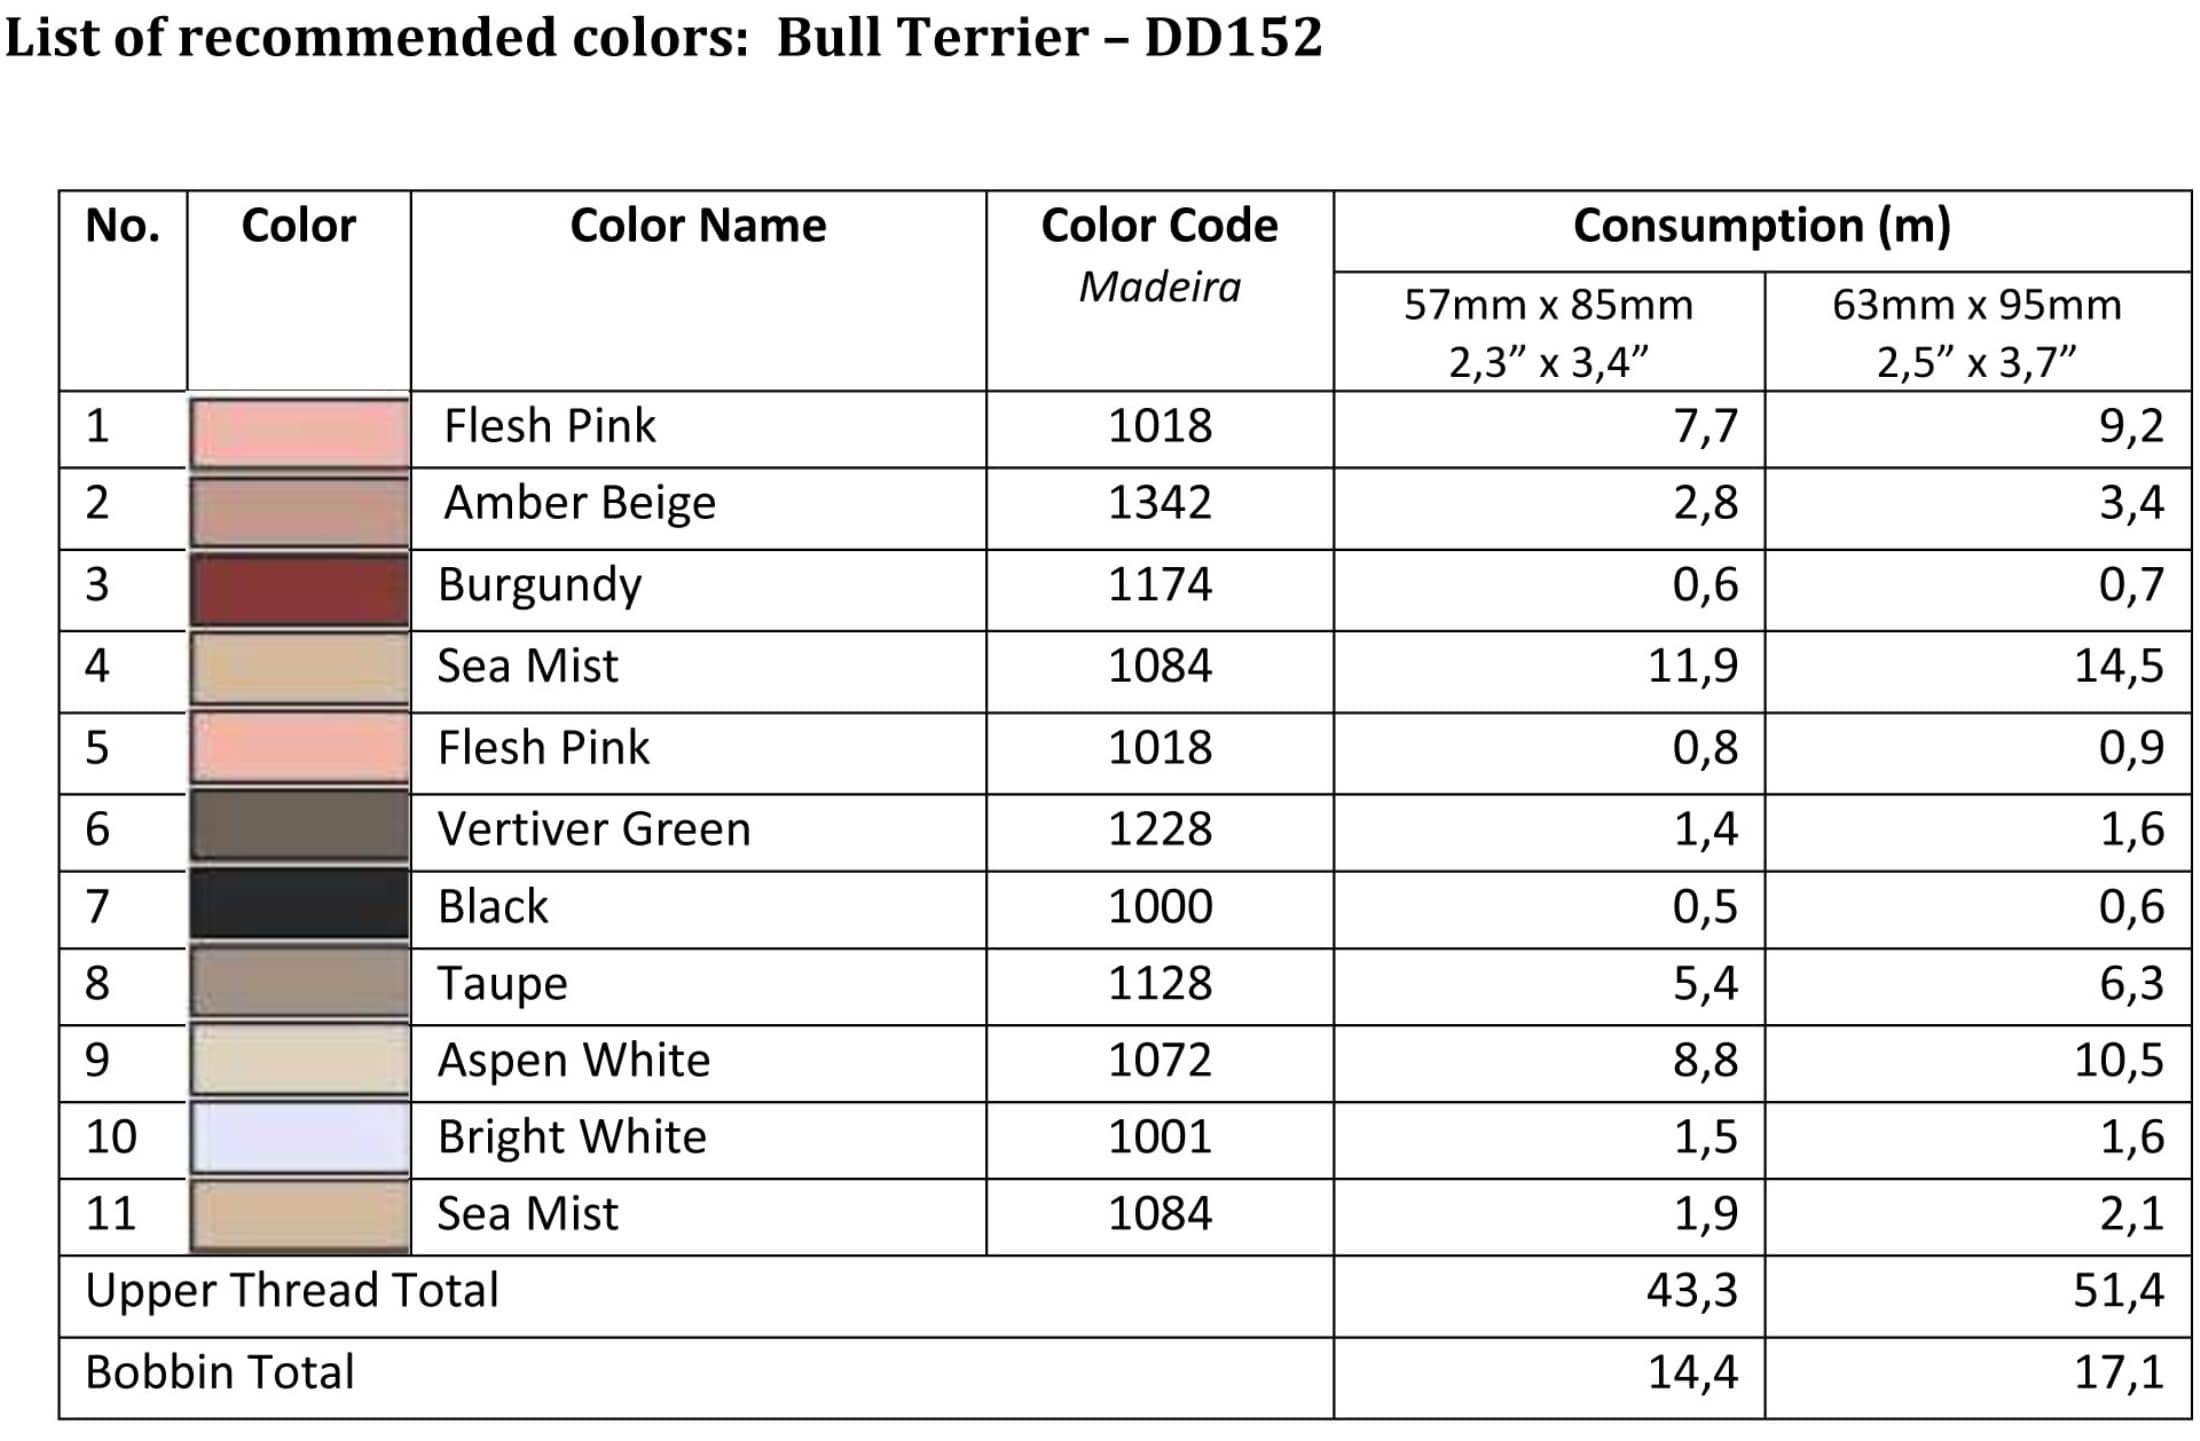 List of recommended colors - Bull Terrier - DD152